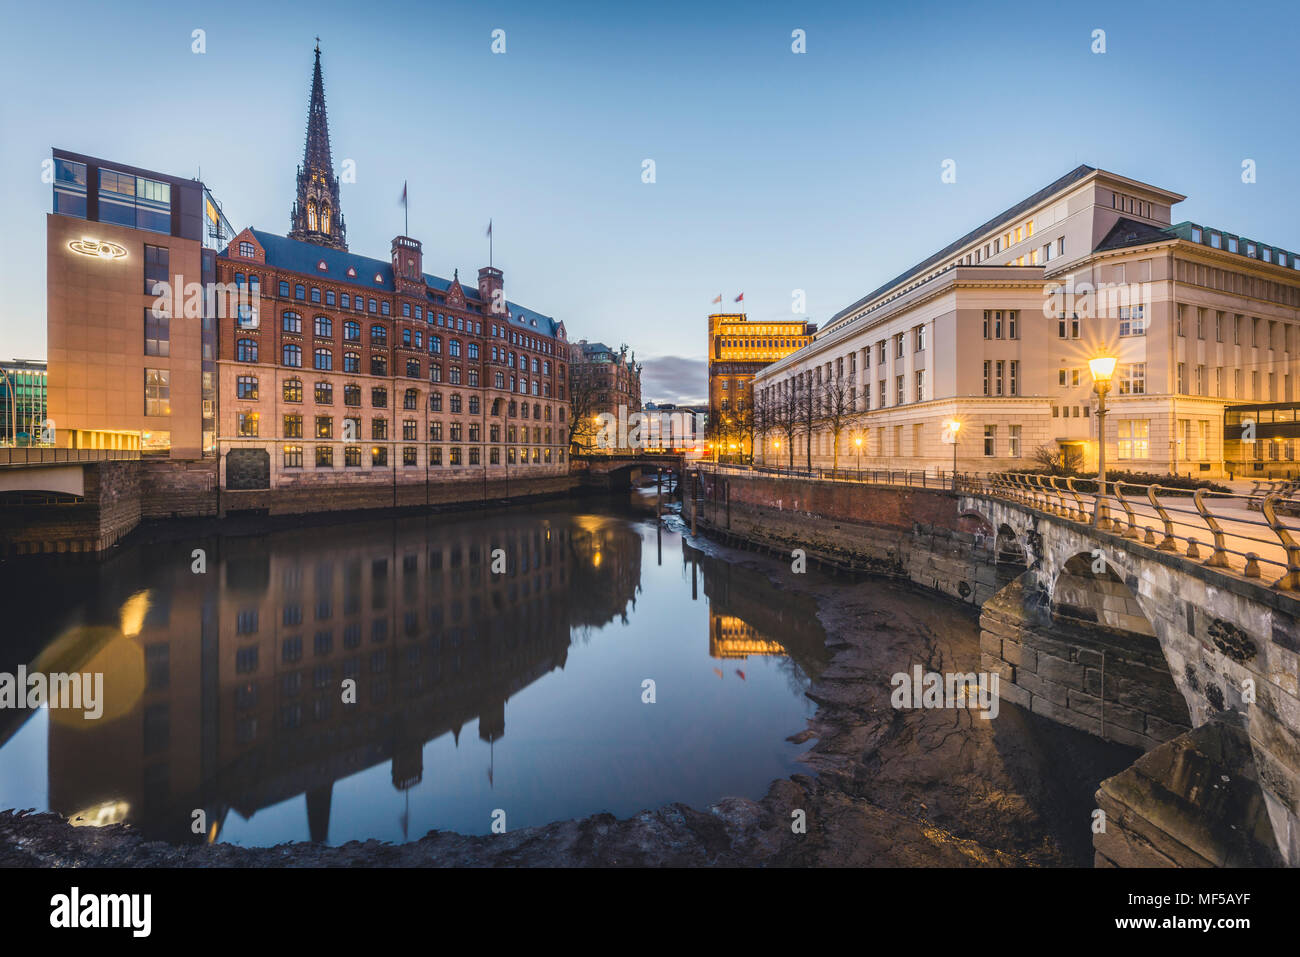 Germany, Hamburg, Hamburg, Hamburg-Altstadt, Nikolai Fleet, Stock Exchange and house of 'Patriotische Gesellschaft' - Stock Image